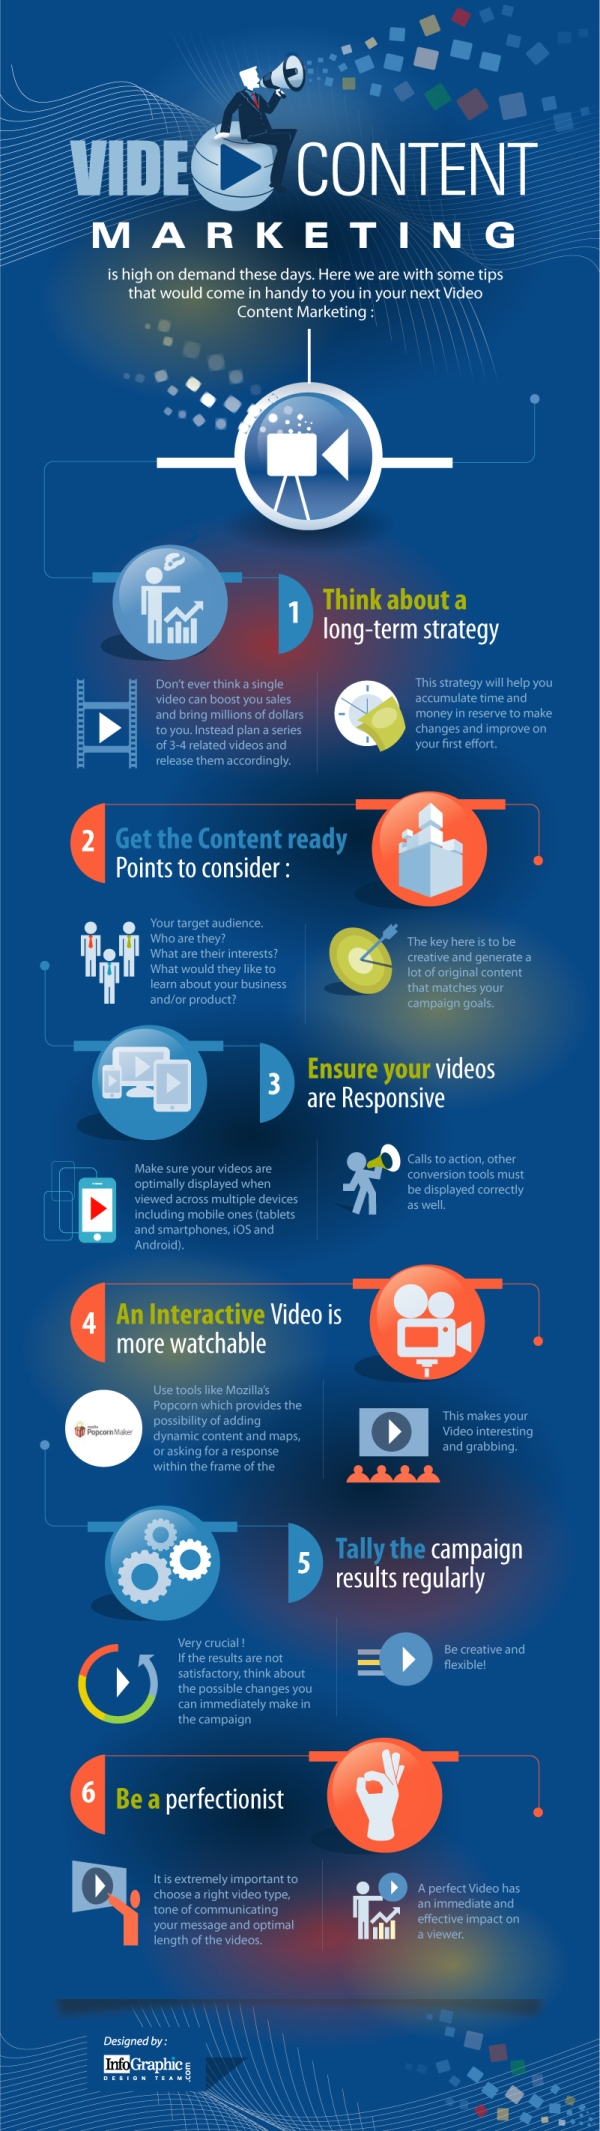 Tips-for-your-Video-Content-Marketing_d15